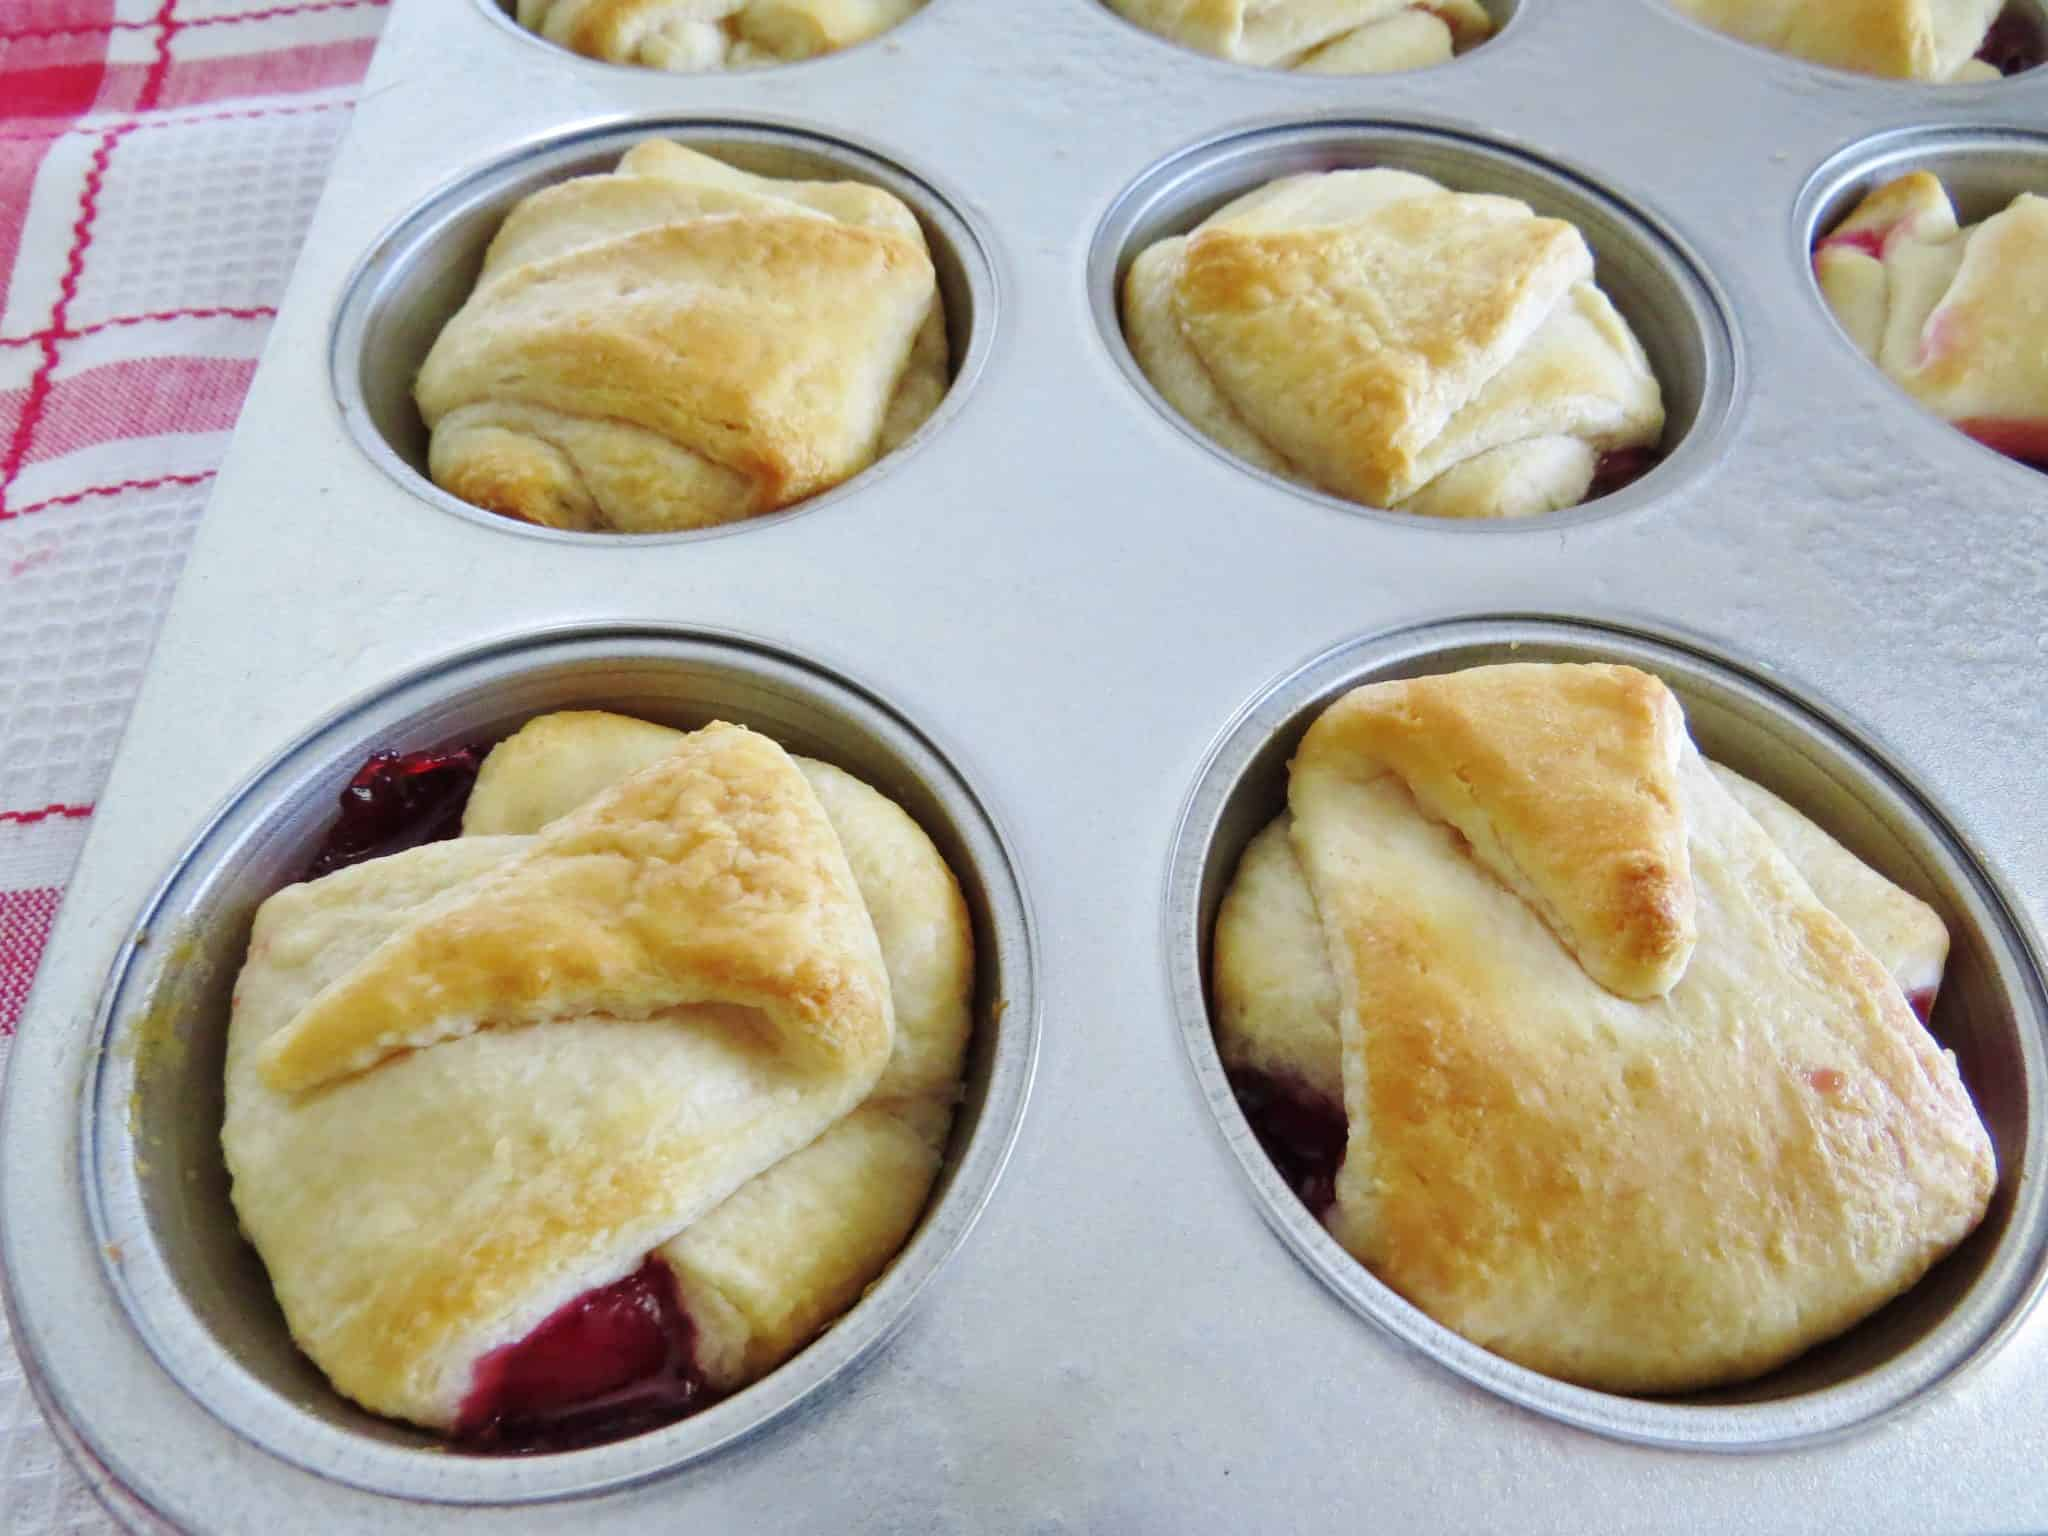 Muffins Made With Cake Mix And Pie Filling